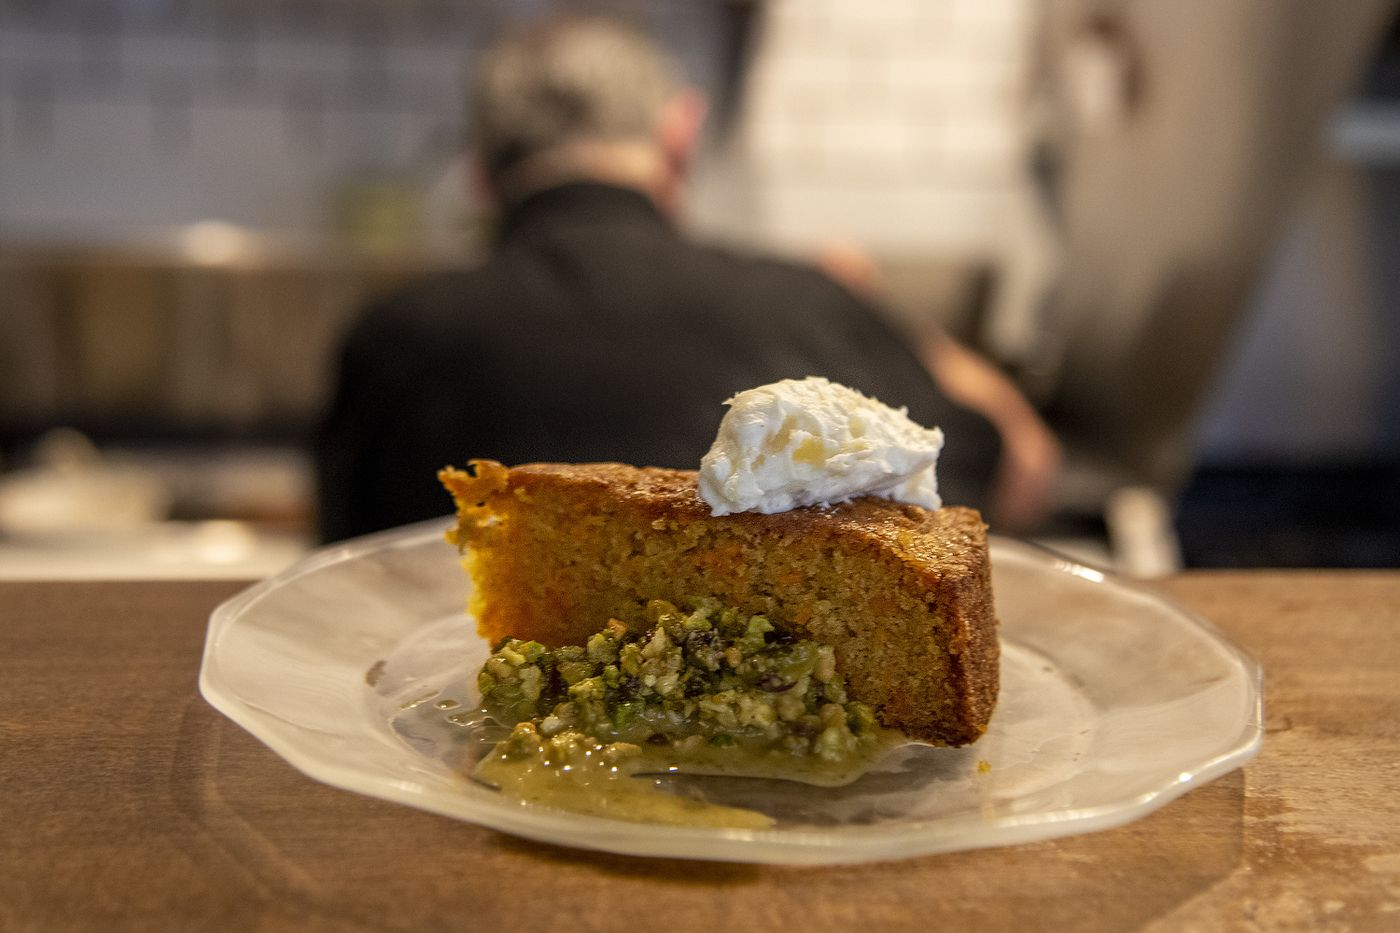 The carrot cake at The Little Hen is based on the Frog Commissary dessert.